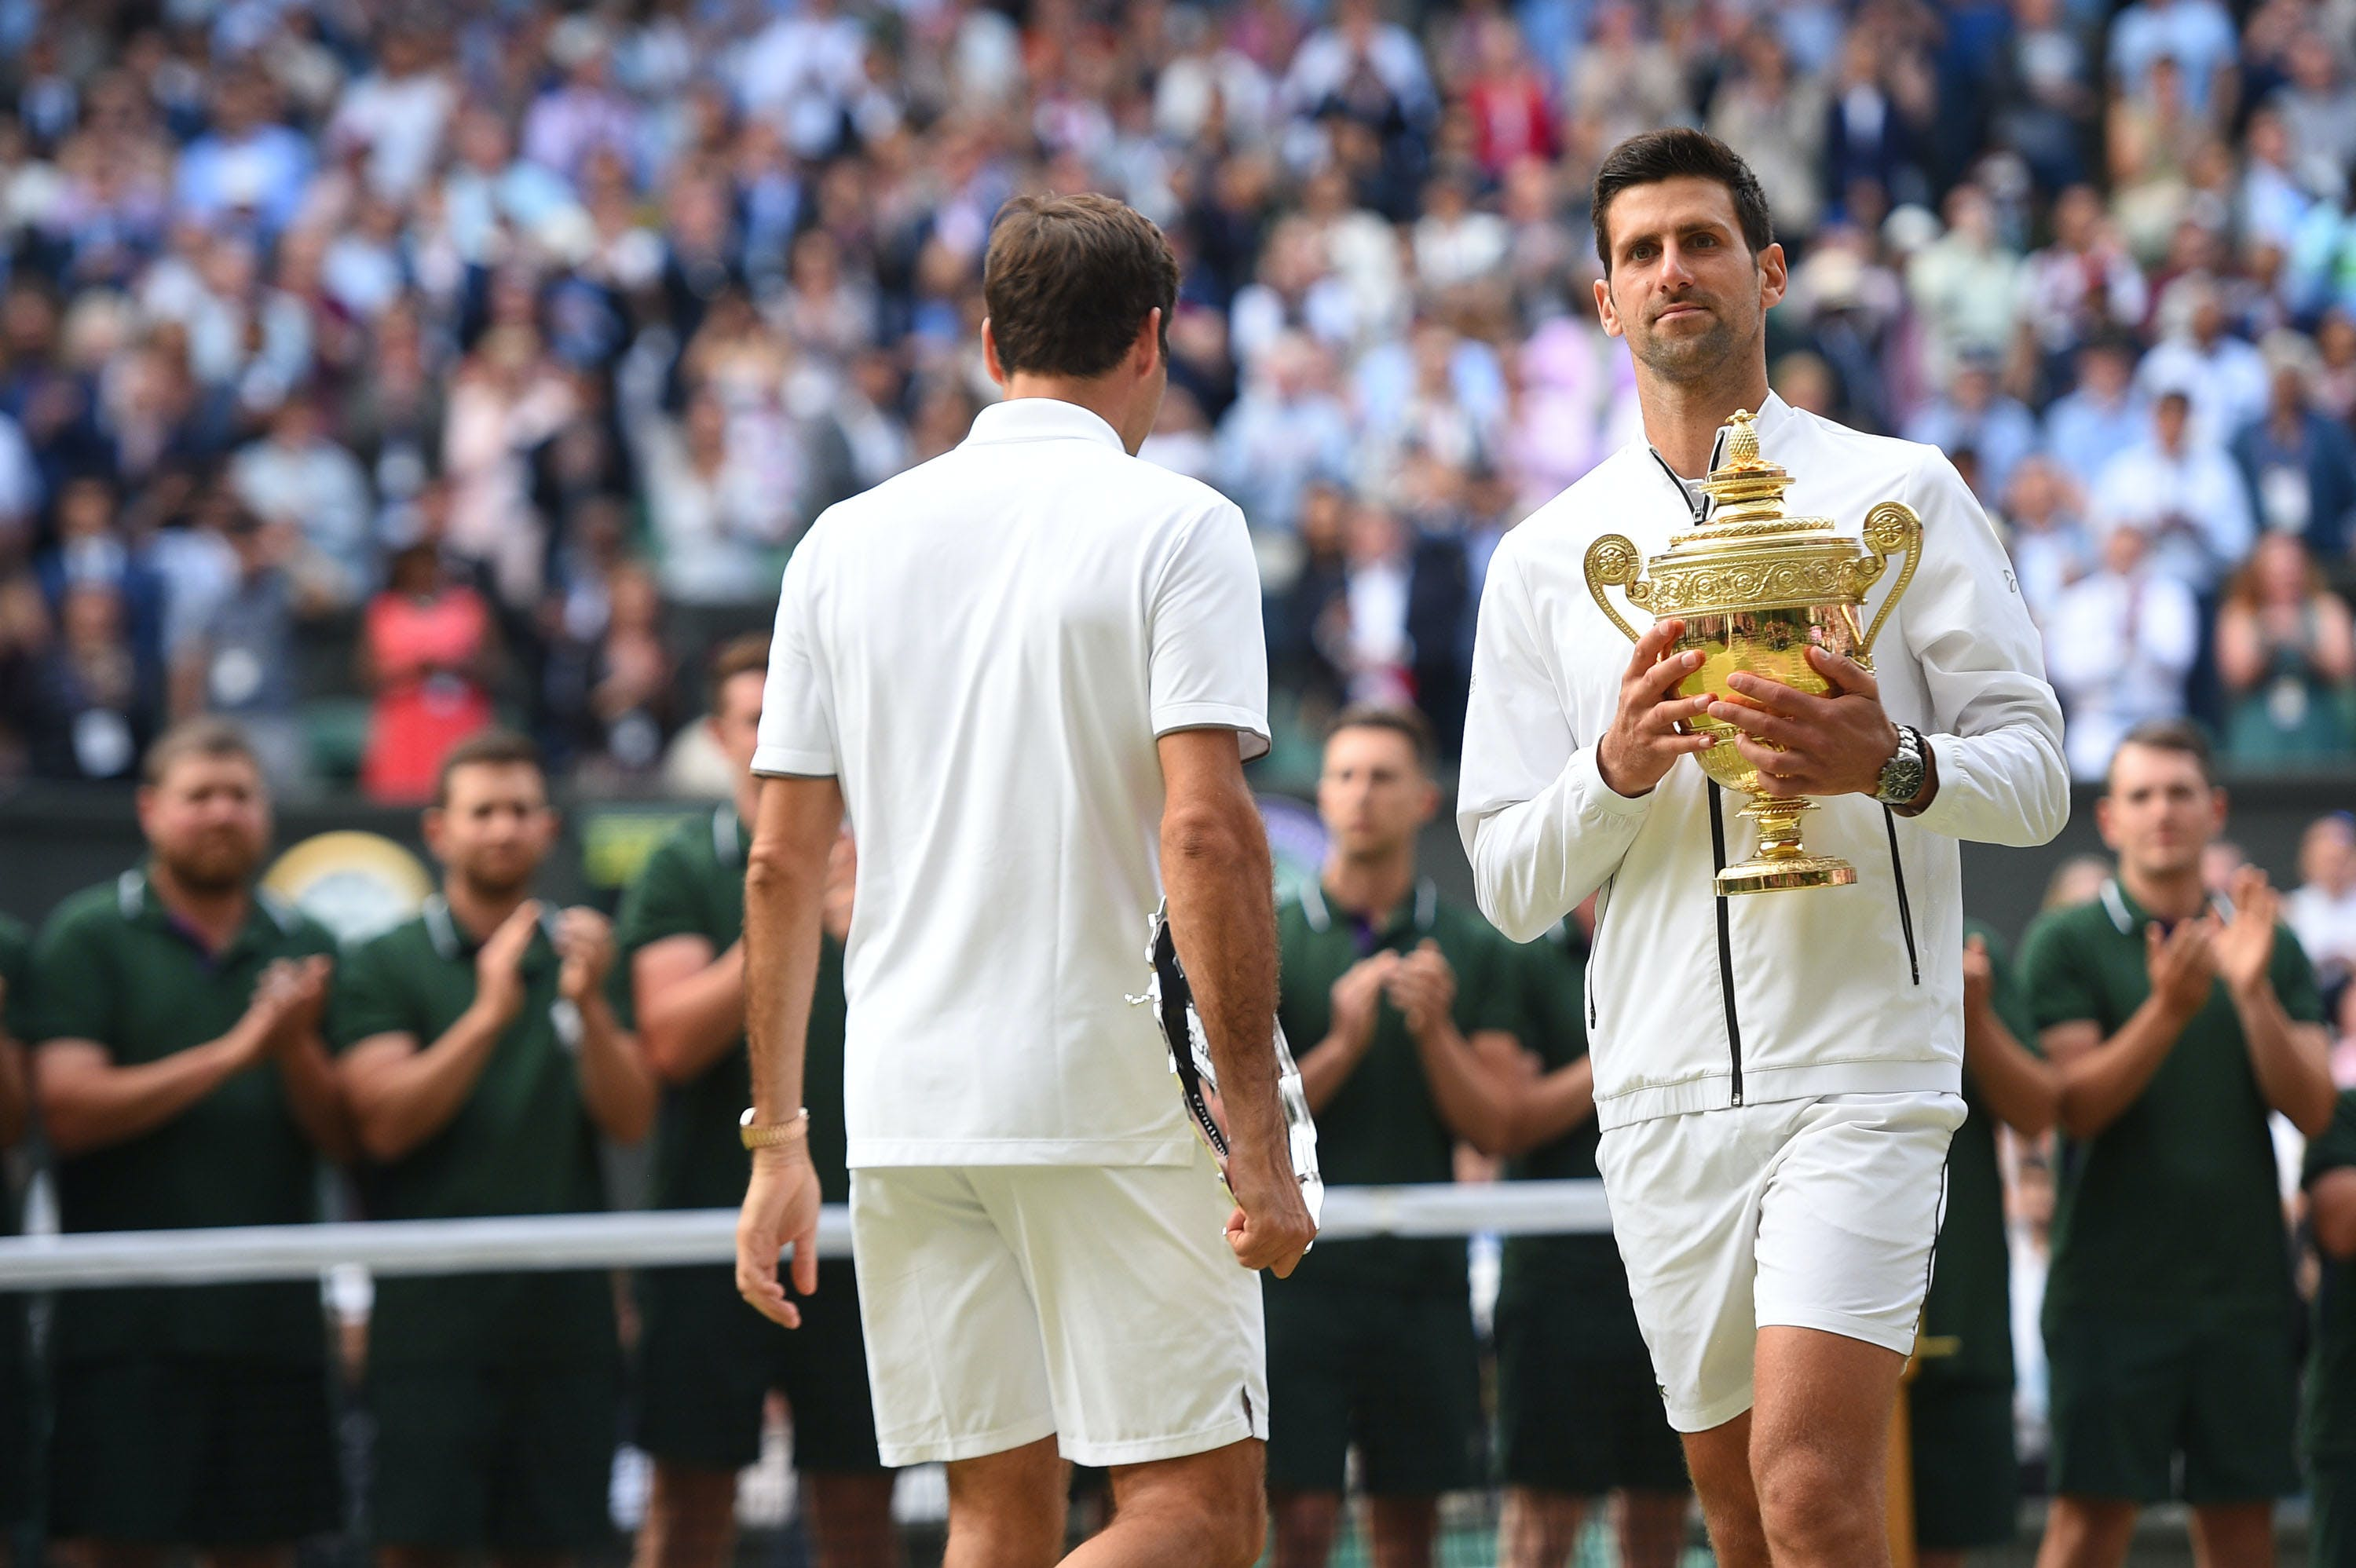 Novak Djokovic and Roger Federer changing ends after the trophy ceremony at Wimbledon 2019